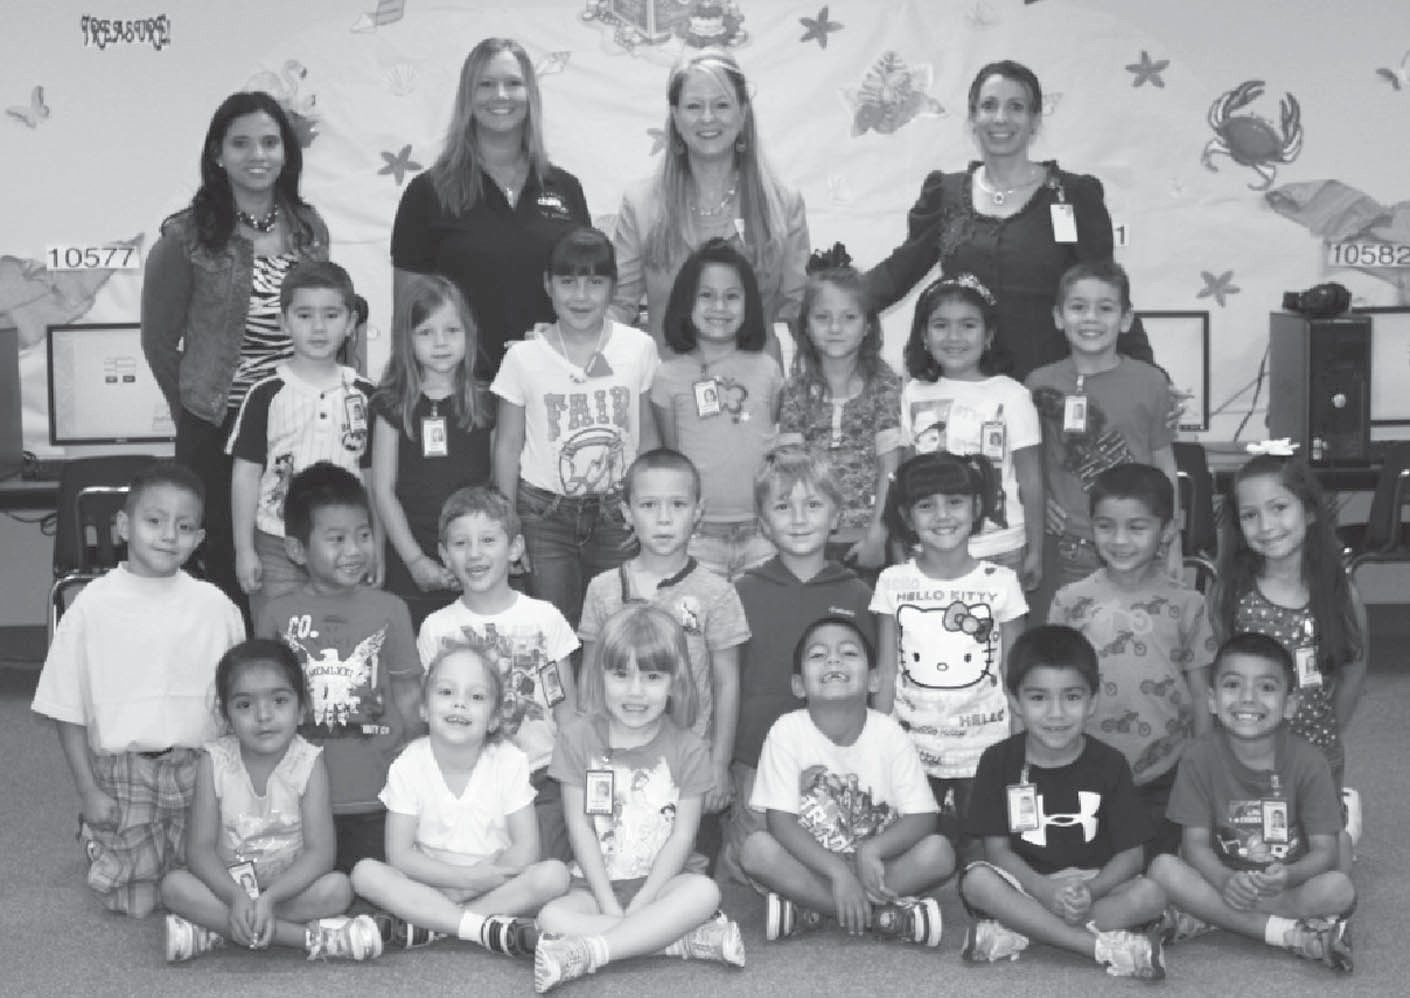 Kindergarten winner – Mrs. Santee's class with $165. Left to right: front row- Angelina Castro, Autumn Webster, Evelynn Caraway, Pablo Lara, Max Rangel, Paul Anthony Bernal; second row- Nathan Cortez, Nathan Din, Robert Brown, Hayden Booker, Ely Rankin, Giselle Garibaldi, Joshua DeLeos, Sophia Castillo; third row- Victor Schaefer, Reese Royal, Analise Ximenez, Angeleigh Benavides, Madalyn Allen, Larissa Villarreal, Lucas Roby;bBack row- Mrs. Santee, Chili's Manager – Mrs. Donaghe, Mrs. Russell, Mrs. Vickers.